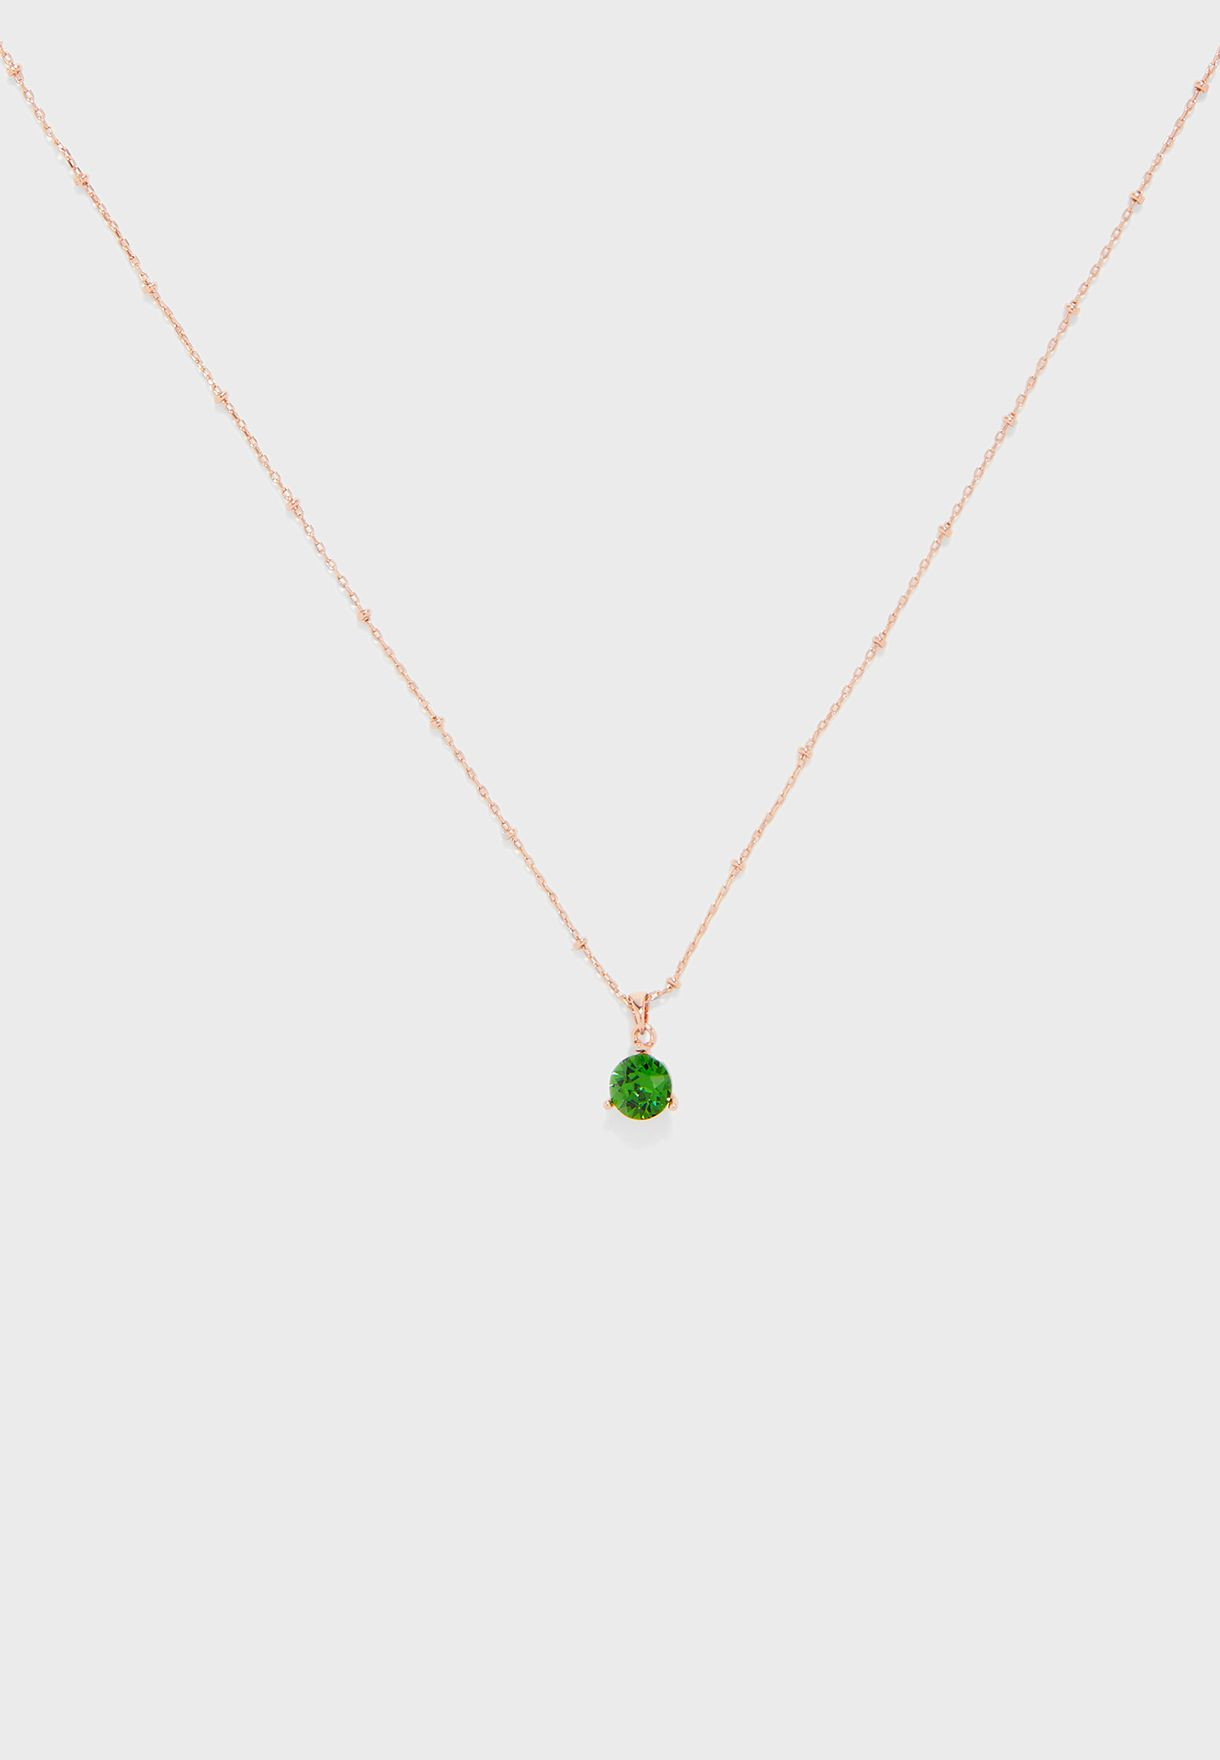 Calta Crystal Candy Solitaire Pendant Necklace